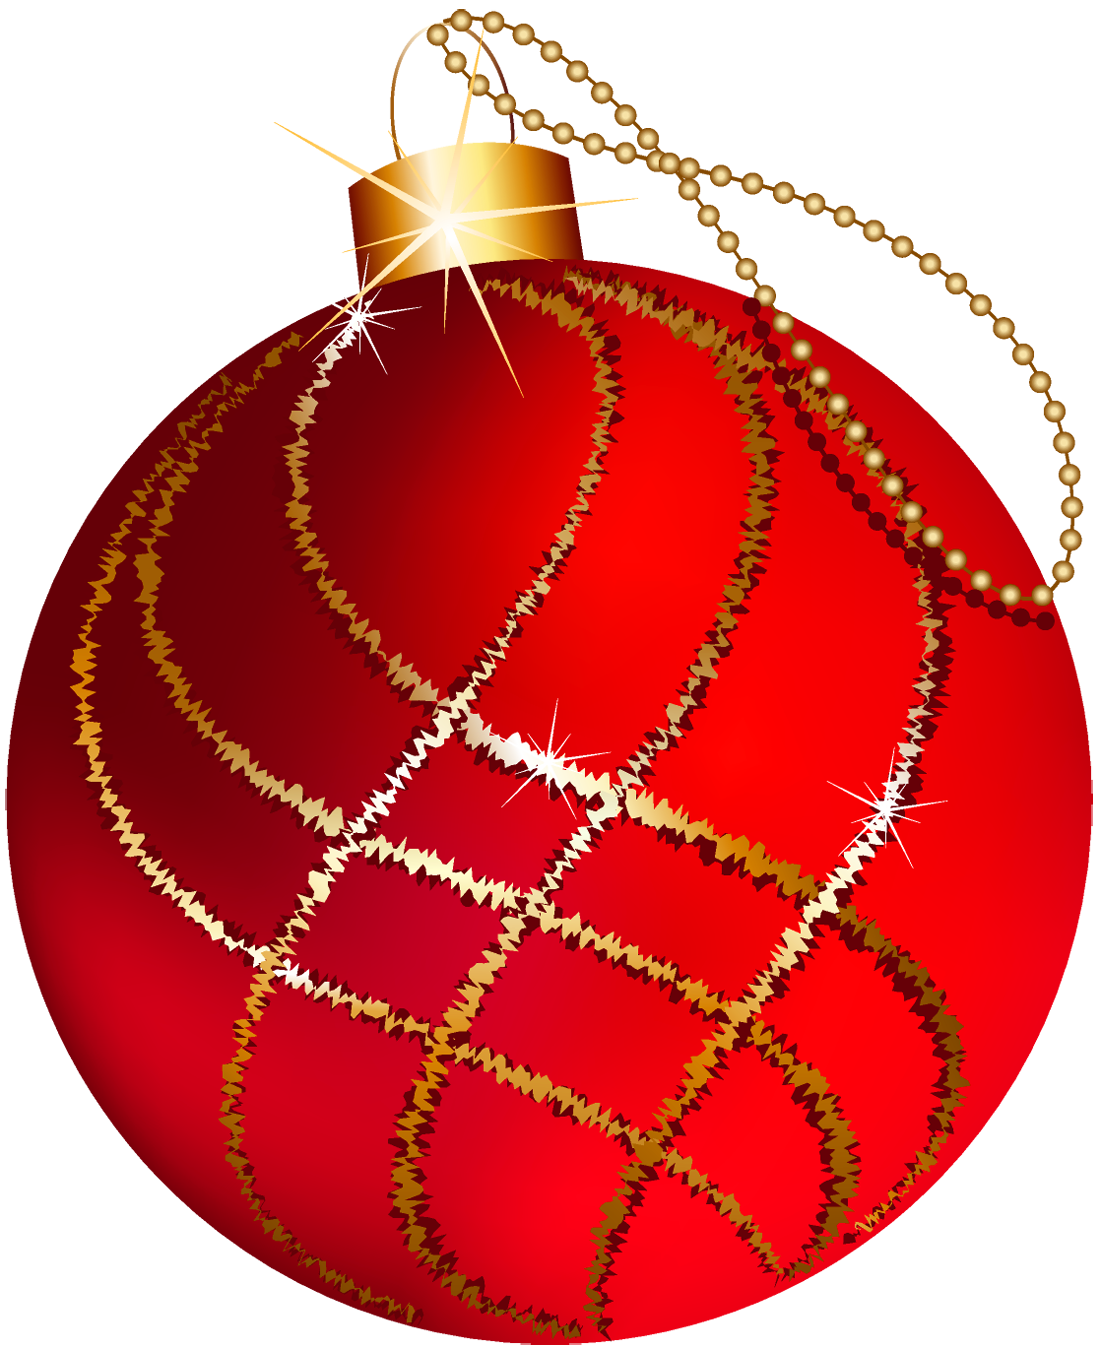 Red And Gold Christmas Ornament Clipart.